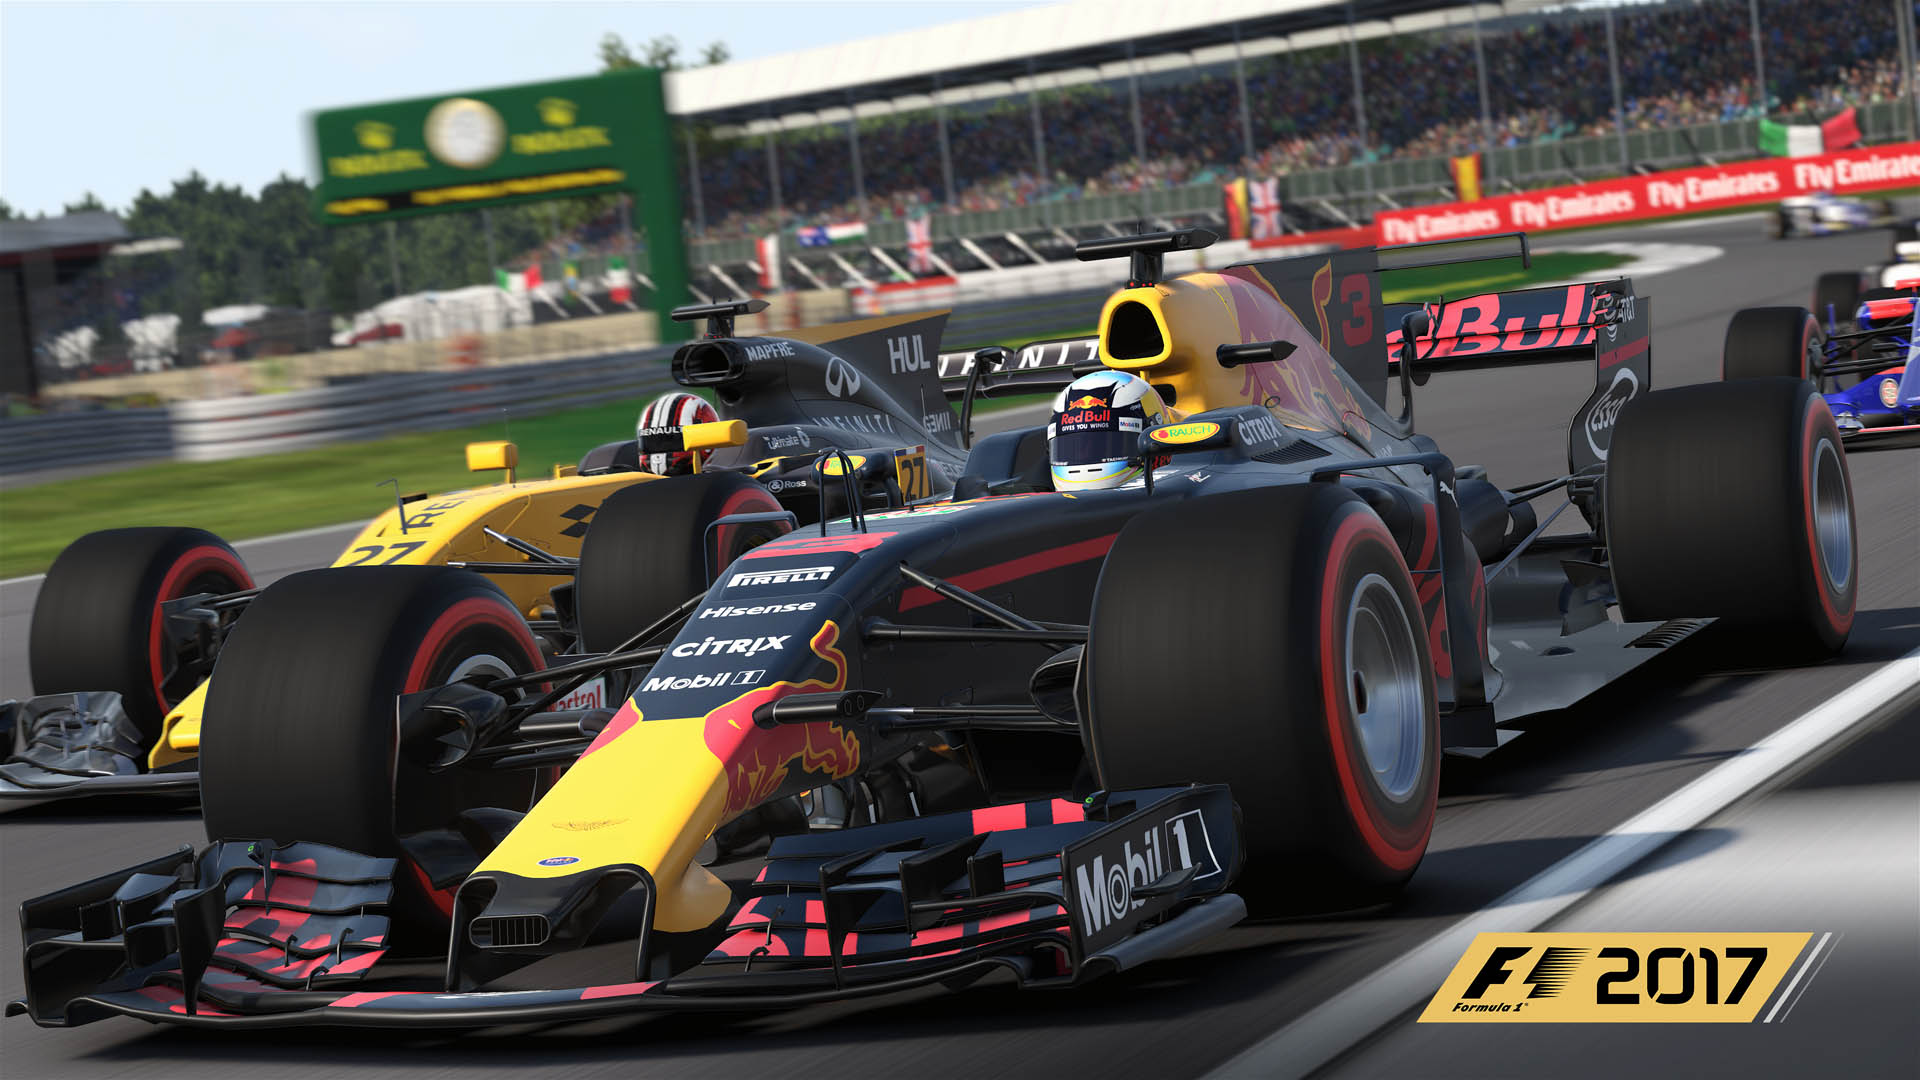 Liveries on point ���� The details that make #F12017 so lifelike �� https://t.co/2EewNd8cpp #F1 https://t.co/LhULvsOd5G